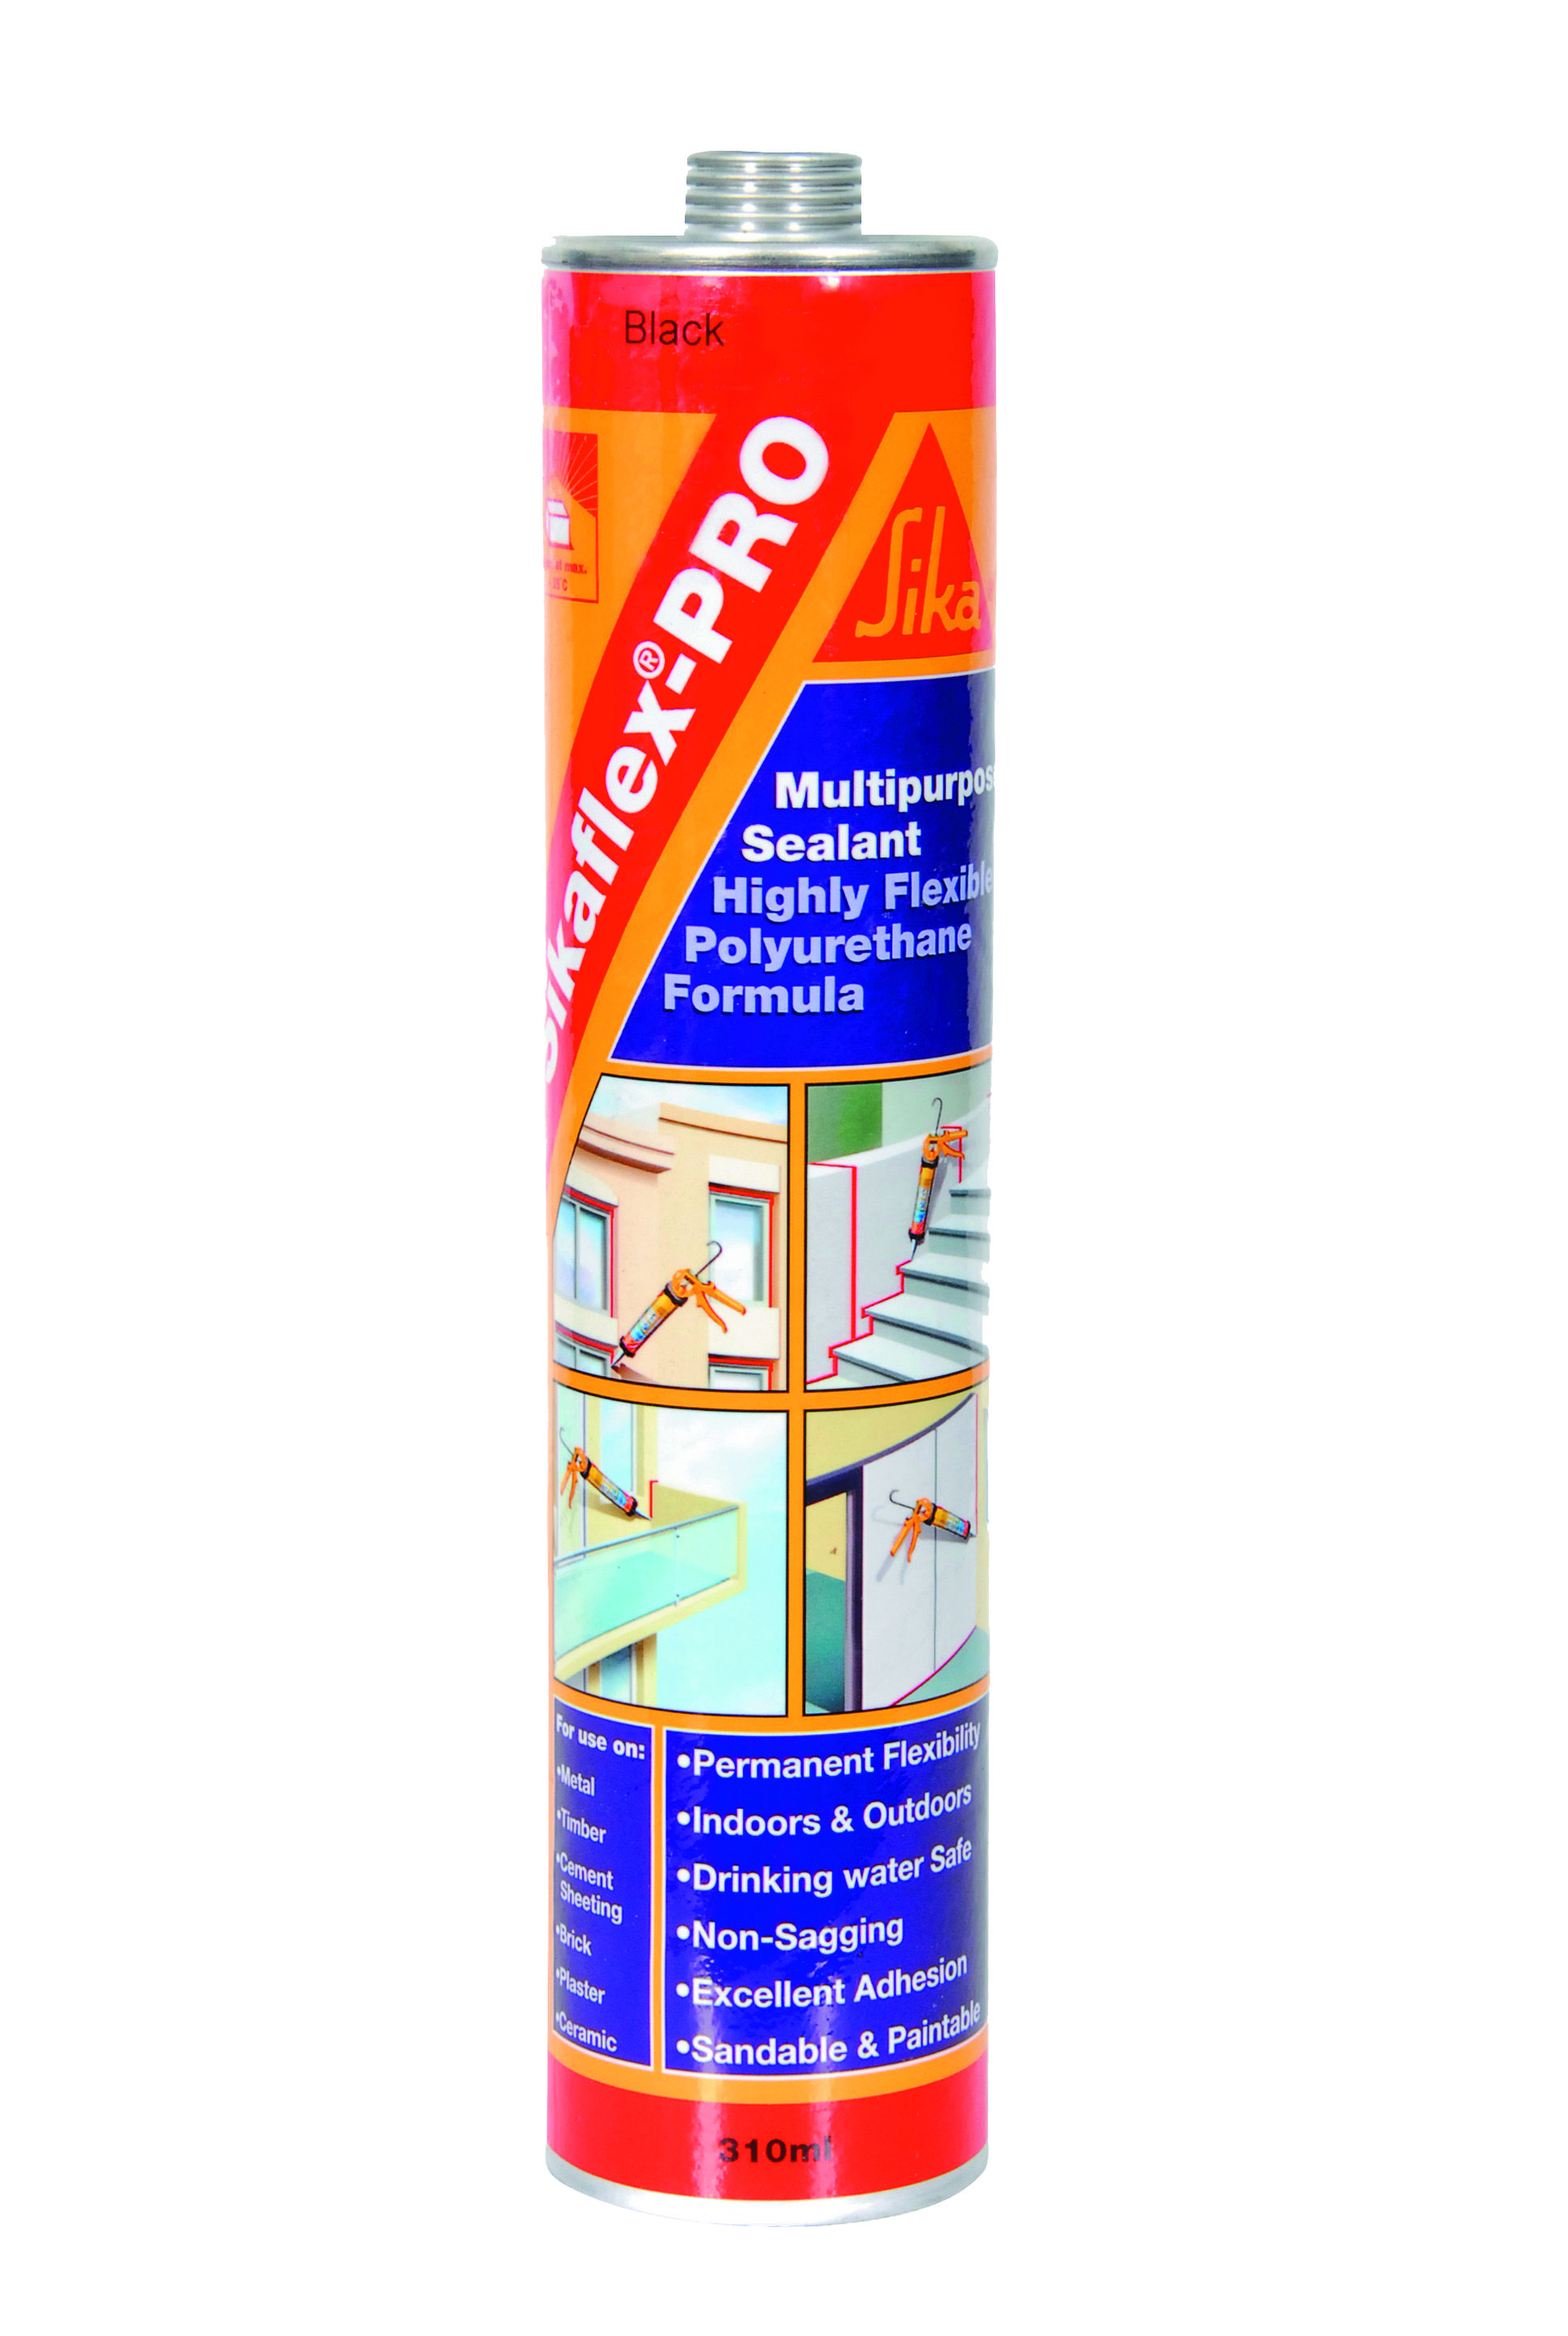 Sikaflex Pro Our Hero Product A Multipurpose Highly Flexible Polyurethane Sealant Available In 11 Colours Thats Polyurethane Sealant Sealant Diy Renovation